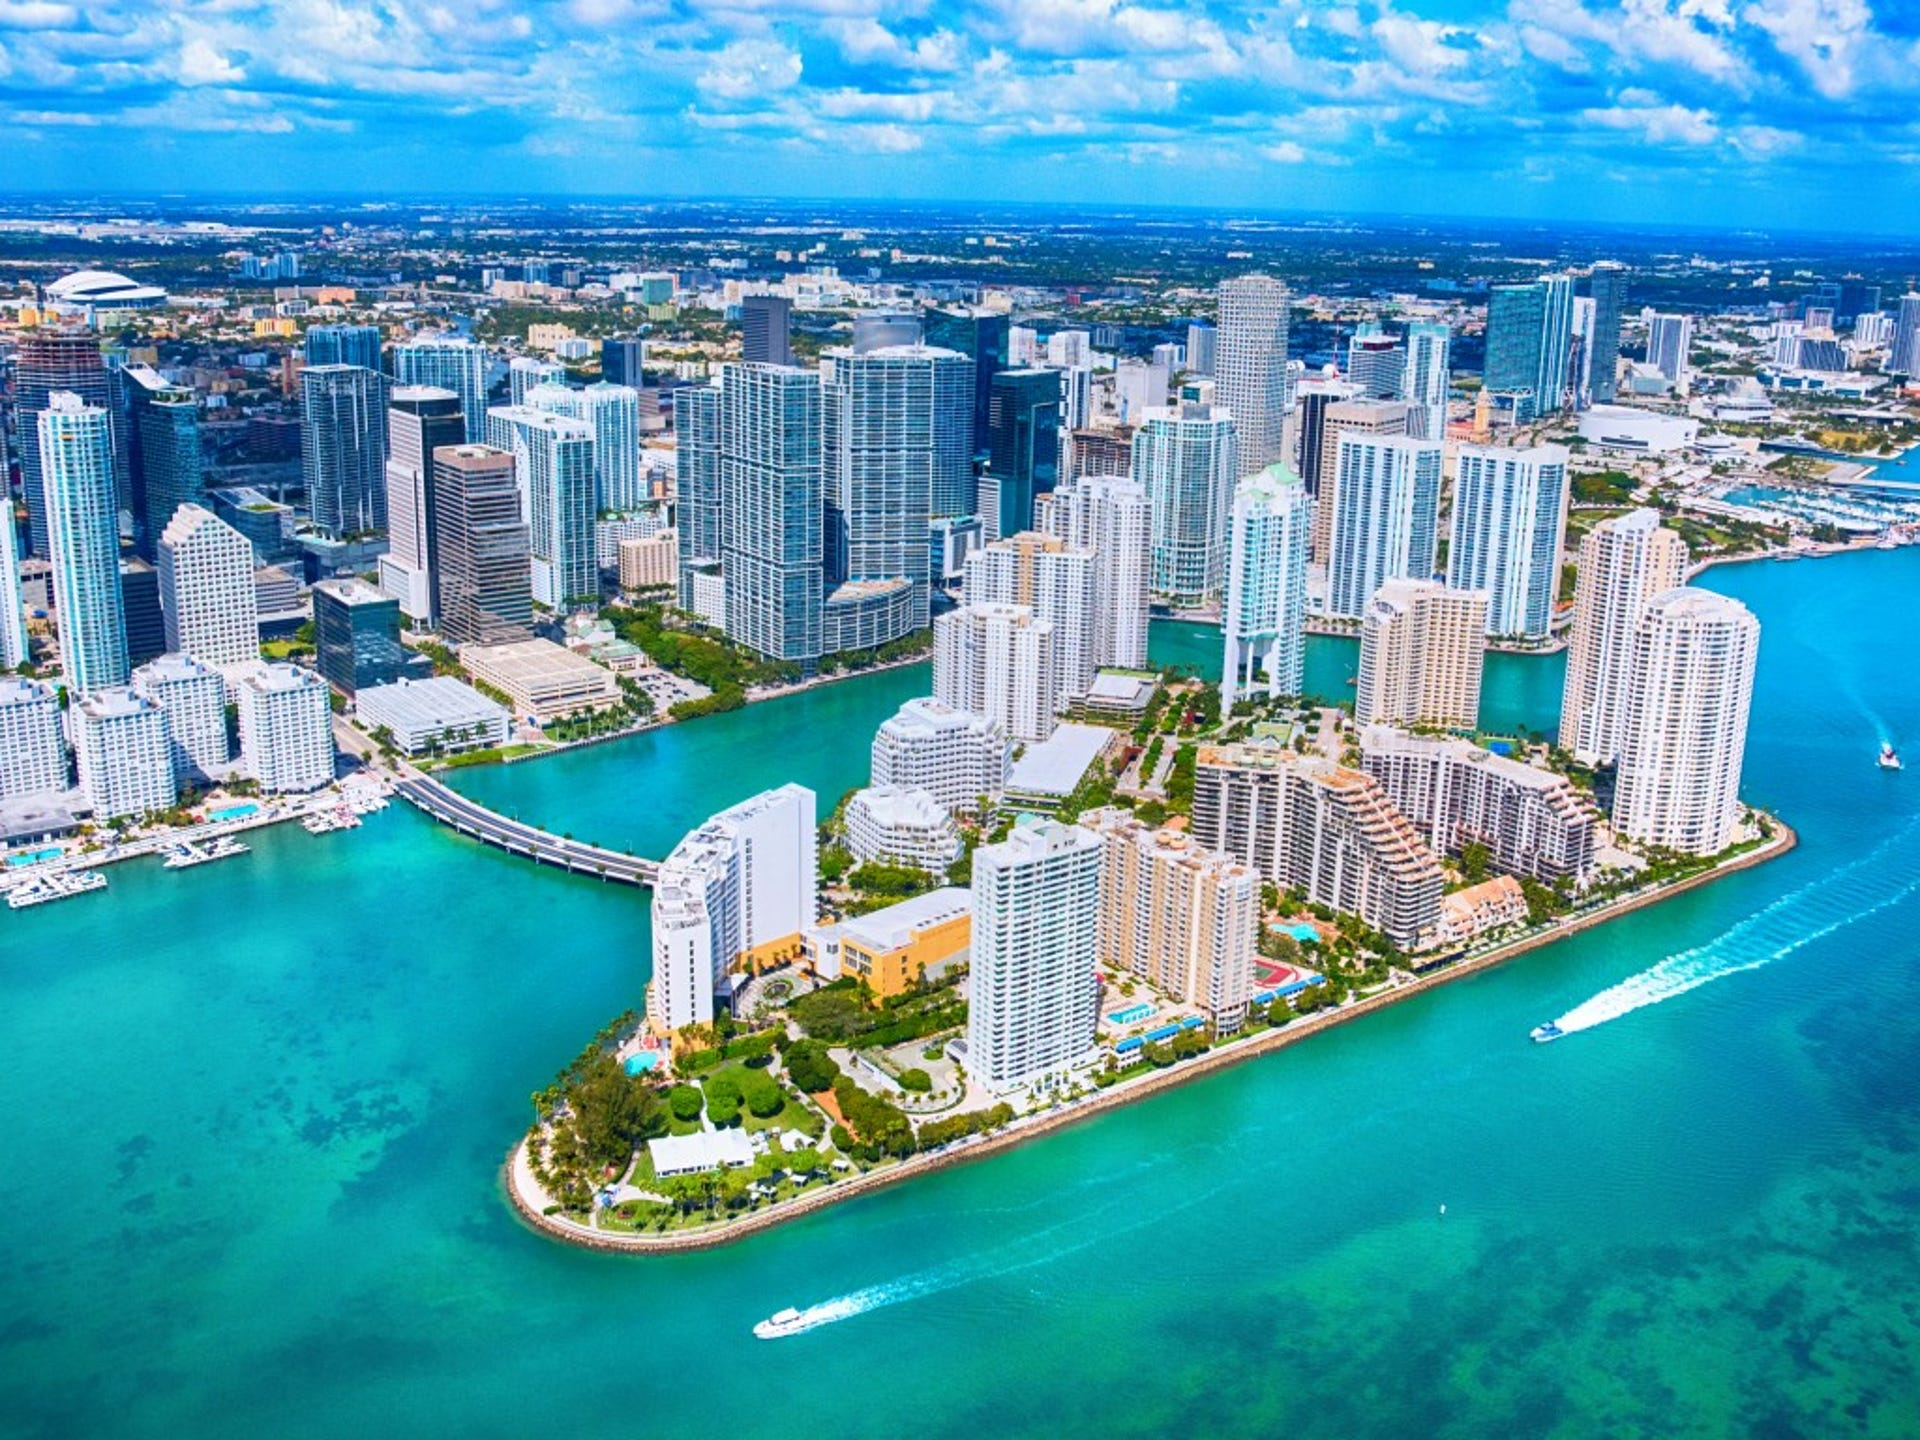 1. Miami, FL     • Total properties at risk of hurricane damage:  791,775     • Reconstruction cost value of properties:  $157.7 billion     • Metro area population:  6.2 million     • Recent severe hurricane:  Andrew (1992) Of all U.S. metropolitan areas, Miami has the most homes at risk of flooding from a hurricane, with more than 791,000 vulnerable properties. The area's risk will continue to increase as its population grows and developers continue to build along its 20 miles of coastline.  Despite its coastal location in Southeast Florida, Miami has avoided a serious encounter with a hurricane for many years. Historically, it has not been so lucky. In August 1992, Hurricane Andrew hit South Florida as a Category 5 storm with wind speeds of 165 miles per hour. There 26 people killed, more than 25,500 homes were destroyed, and over 100,000 additional homes were damaged, while 250,000 people were displaced. The results could be much worse were a similar storm hit the area today.